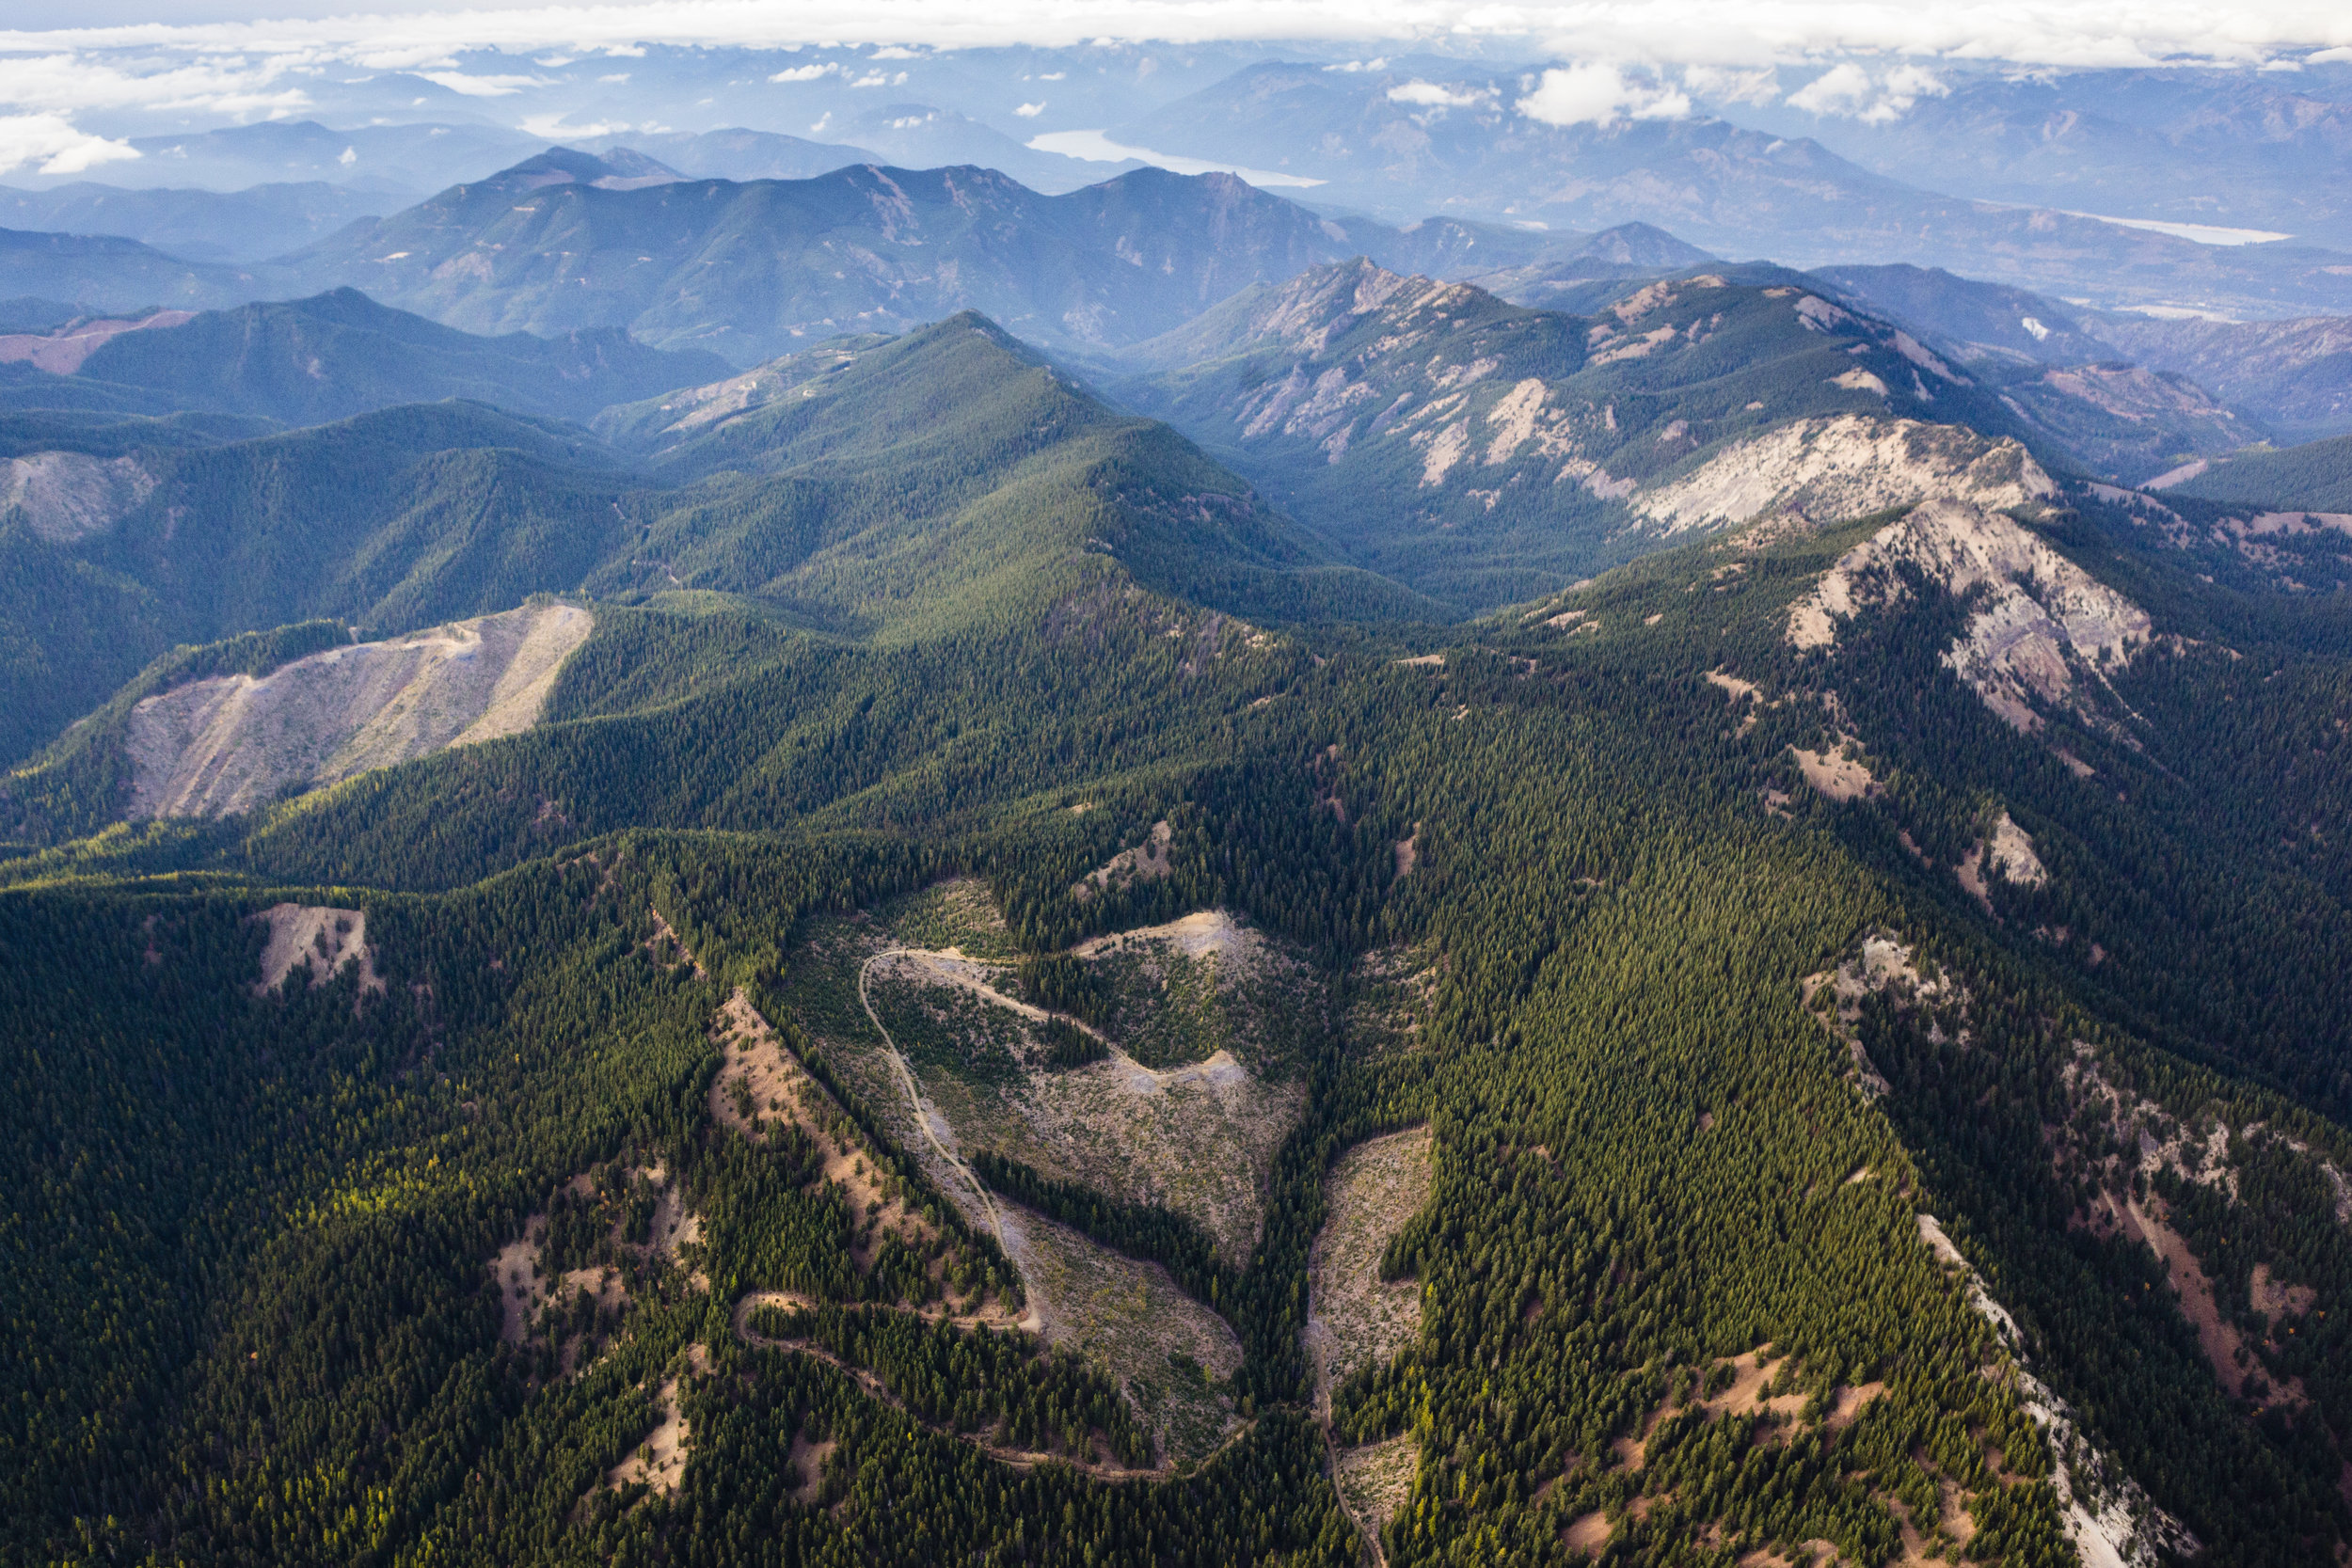 Aerial view south of Cabin Creek, with patches of cut forest interspersed with replanted forest in the Cascade Mountains. Photo © Benjamin Drummond for The Nature Conservancy